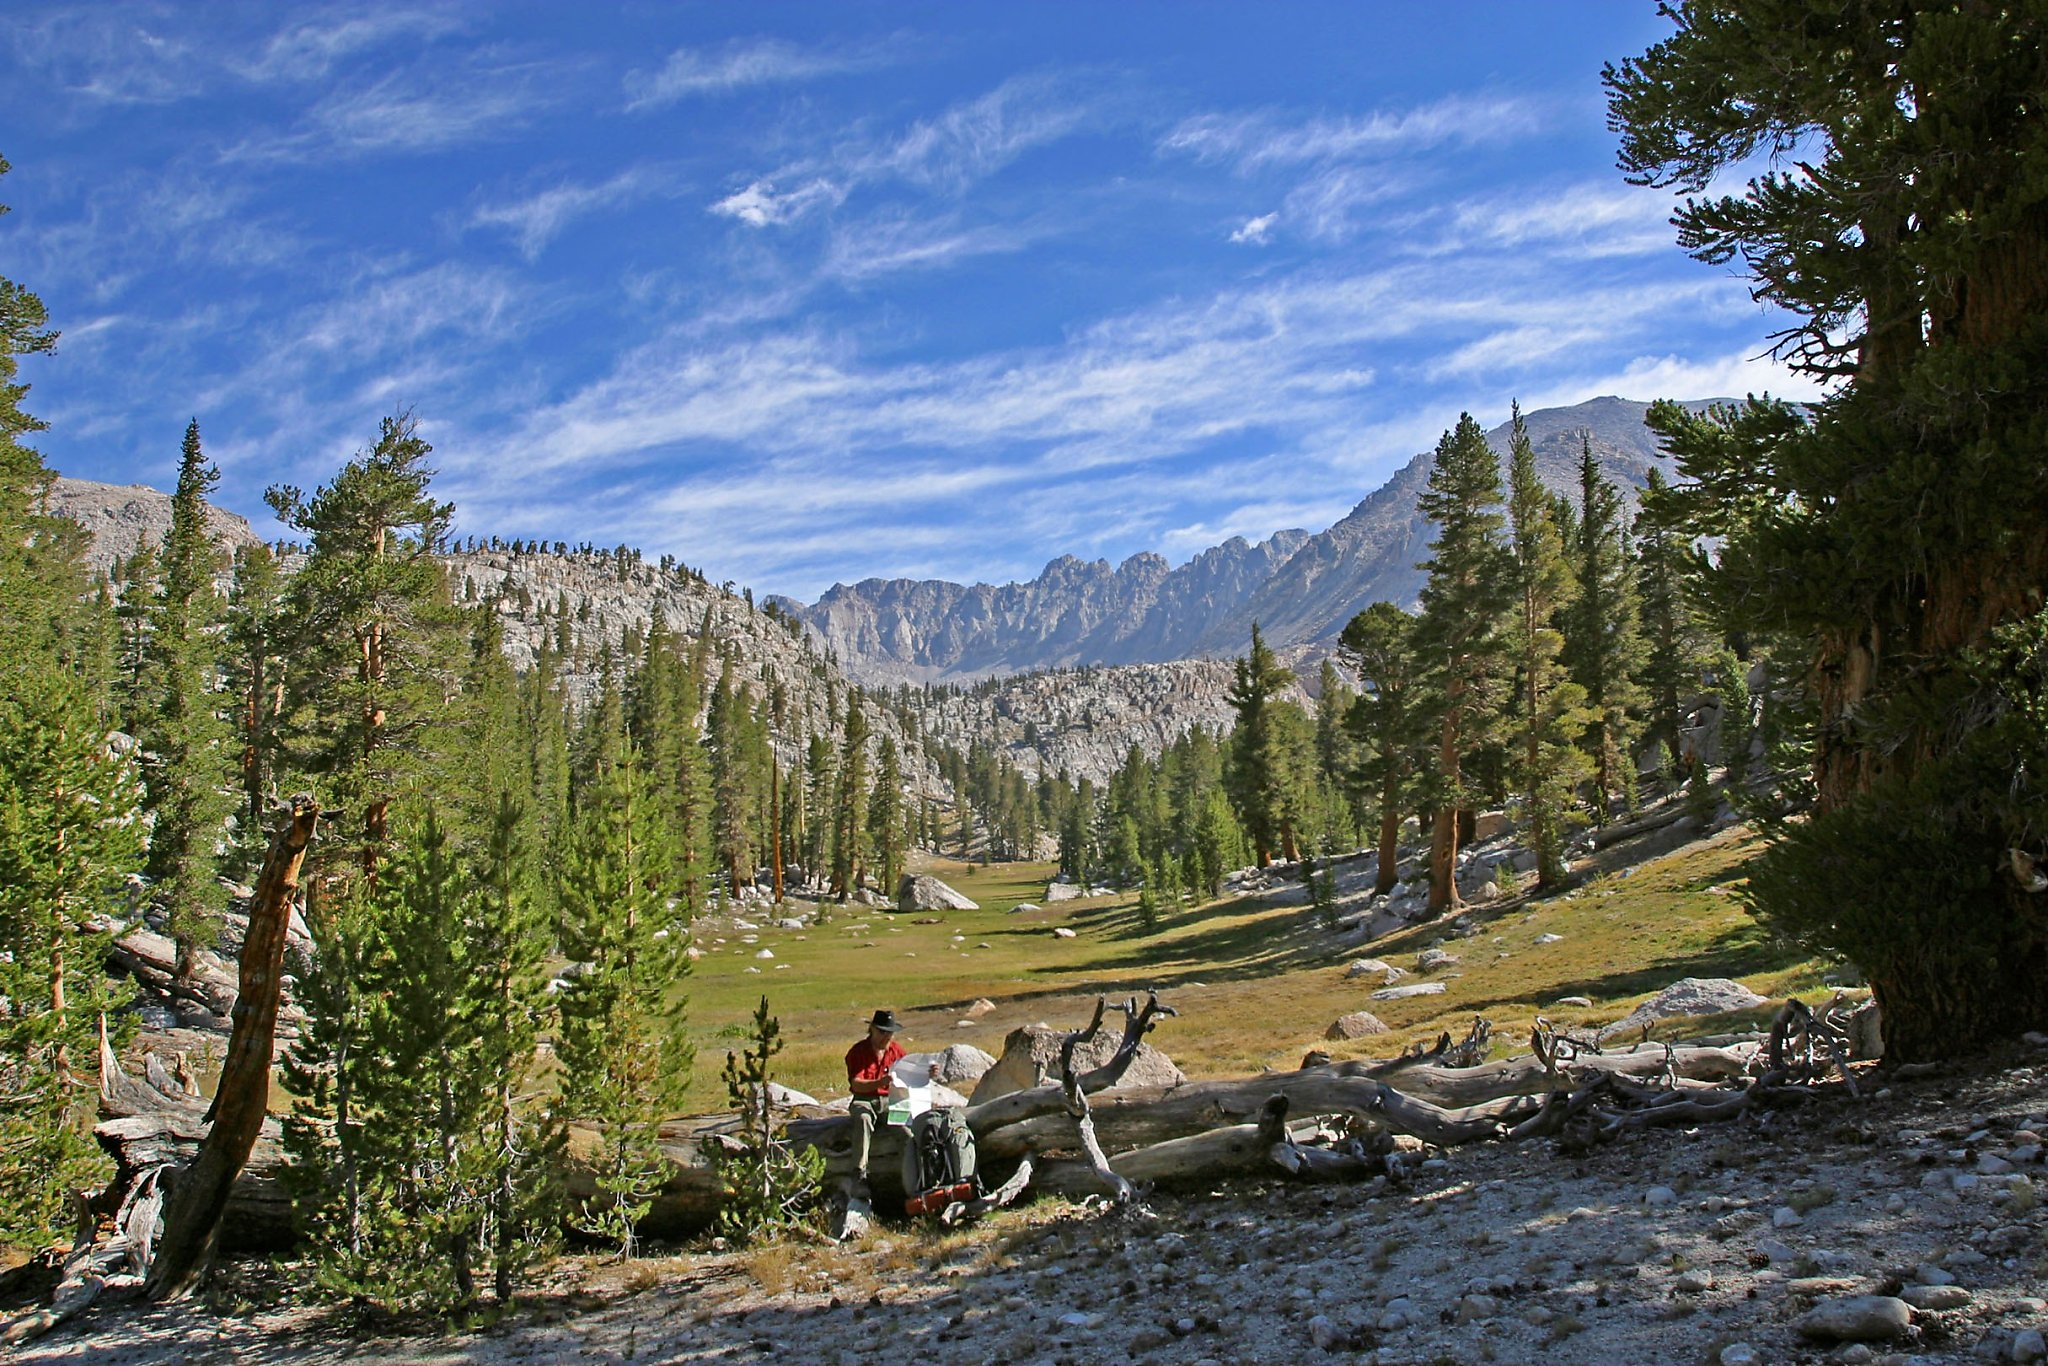 Low Snow Makes This The Best Year To Hike Pacific Crest